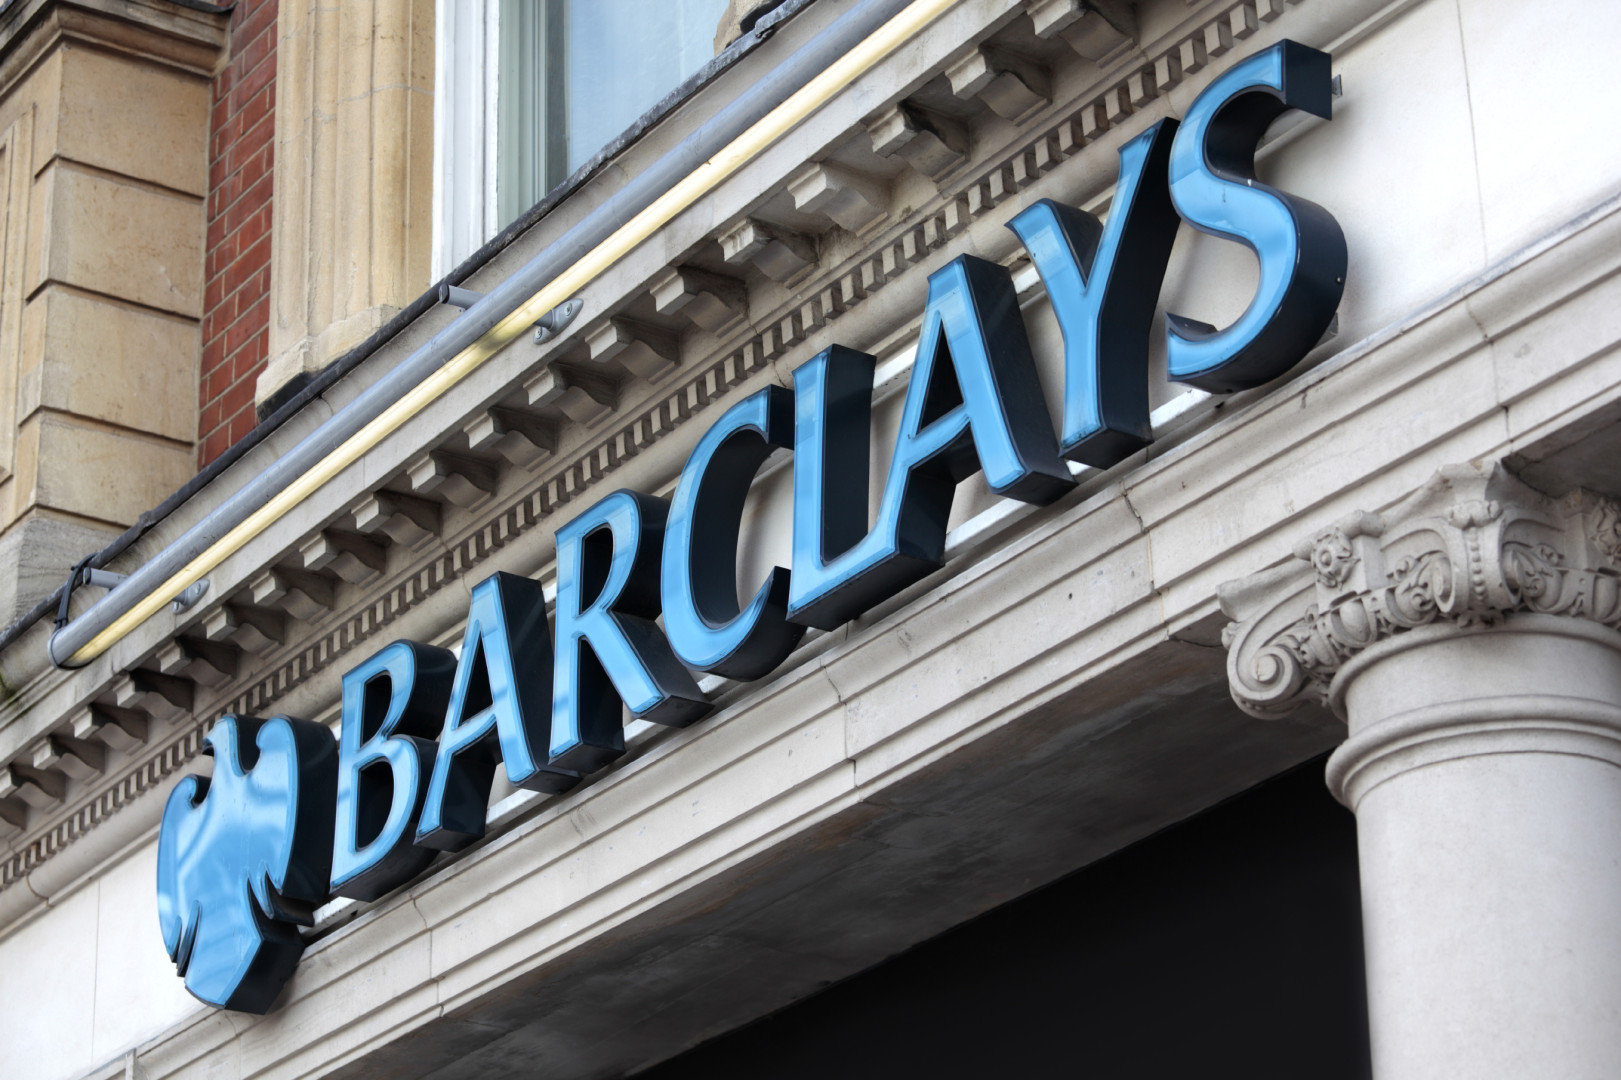 A July report from Public Citizen goes into detail about how often firms such as Barclays, UBS and Credit Suisse have received multiple DPAs and NPAs within only a few years.